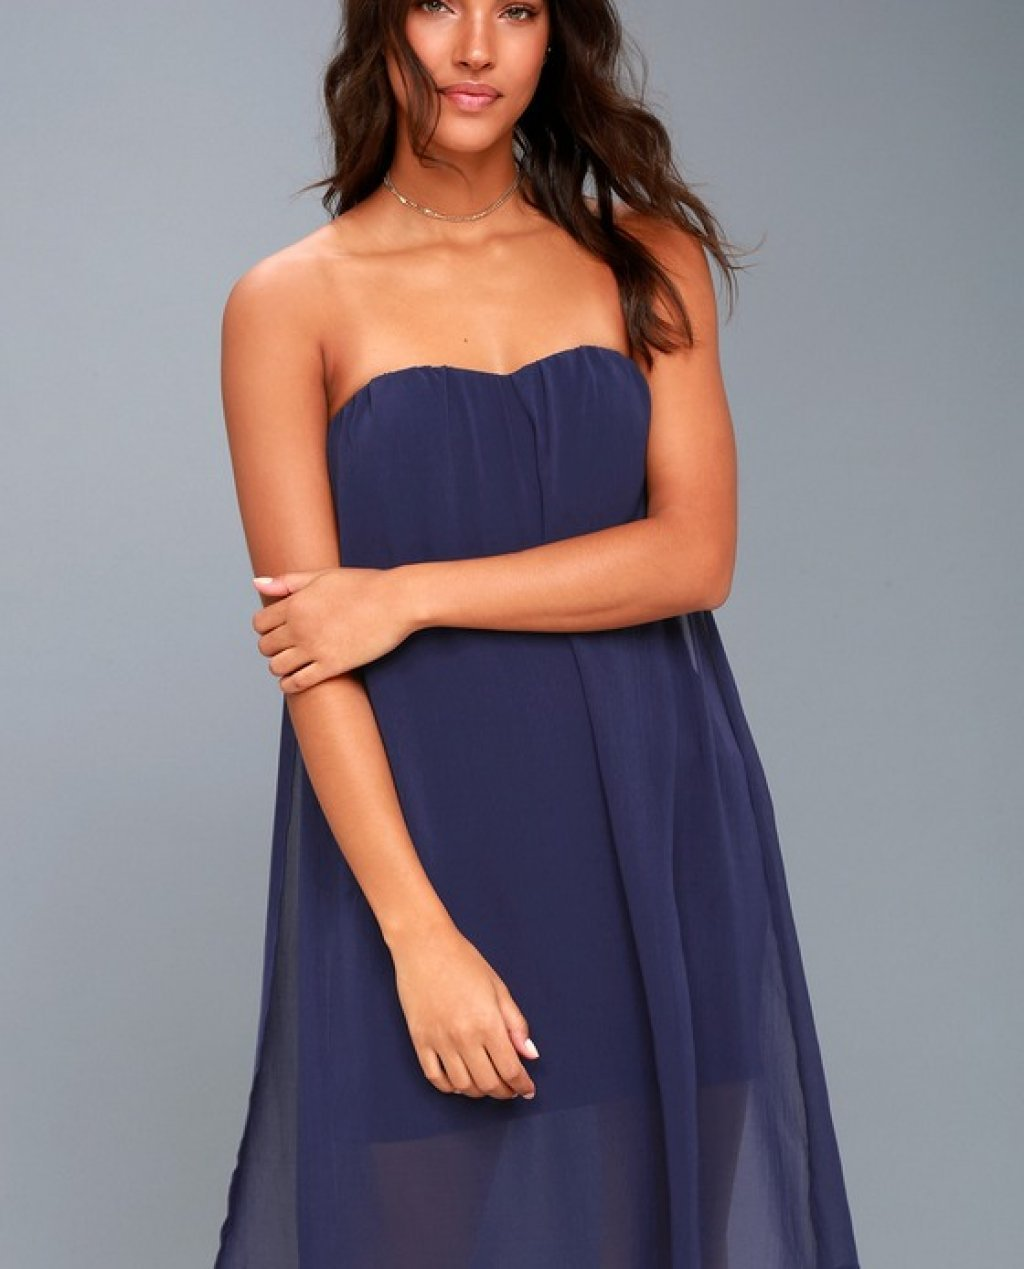 Allure of it All Navy Blue Strapless Dress